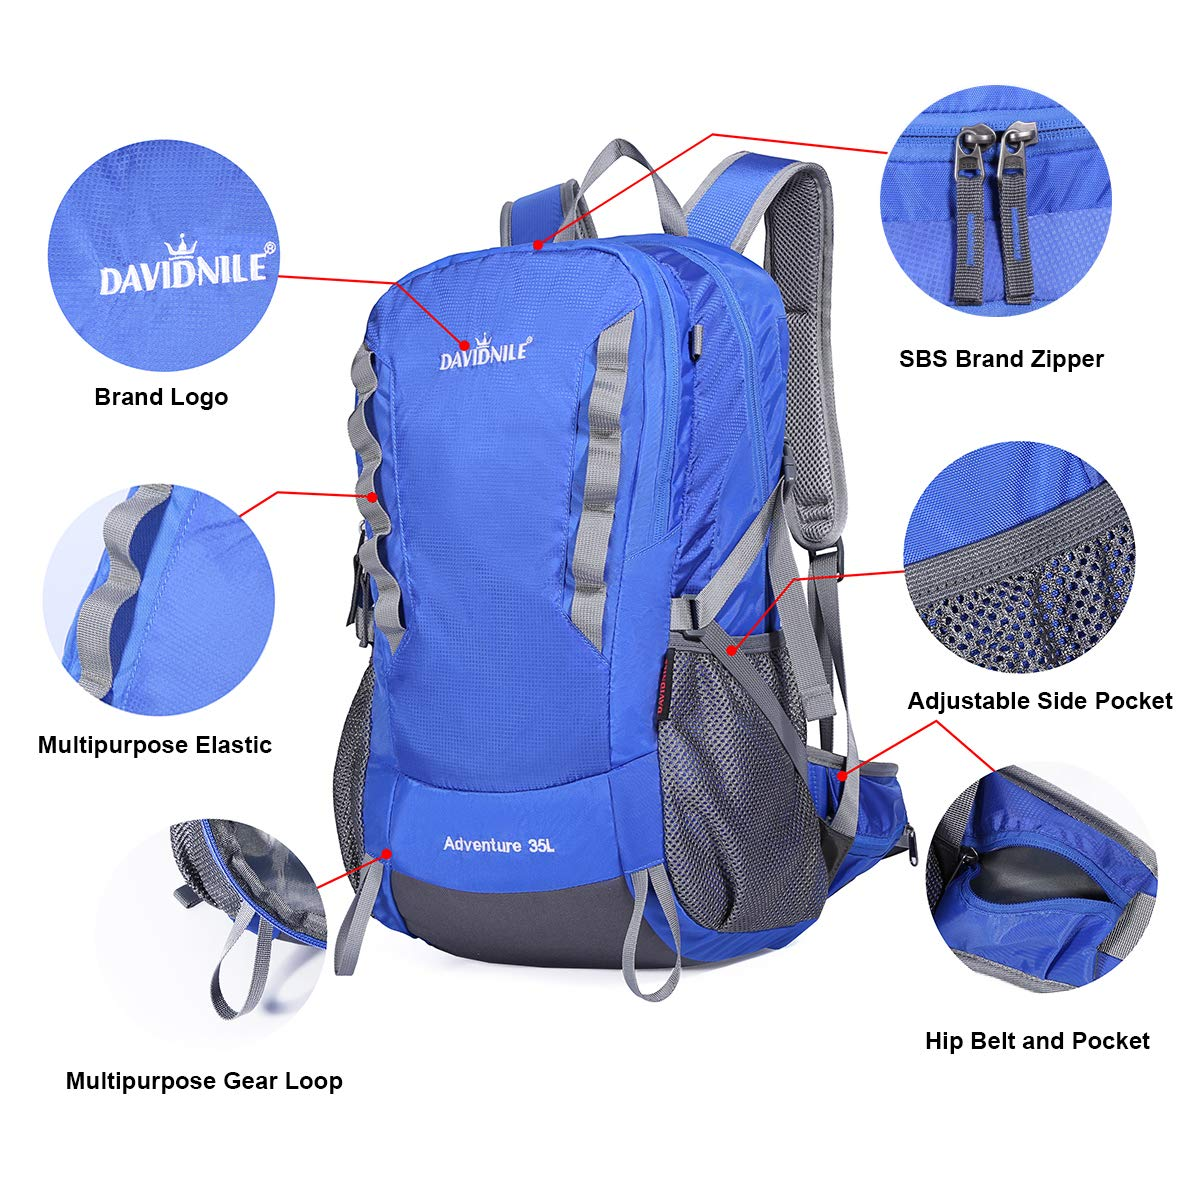 DAVIDNILE Hiking Backpack 35L Waterproof Outdoor Daypack for Men and Women Travel Camping Climbing